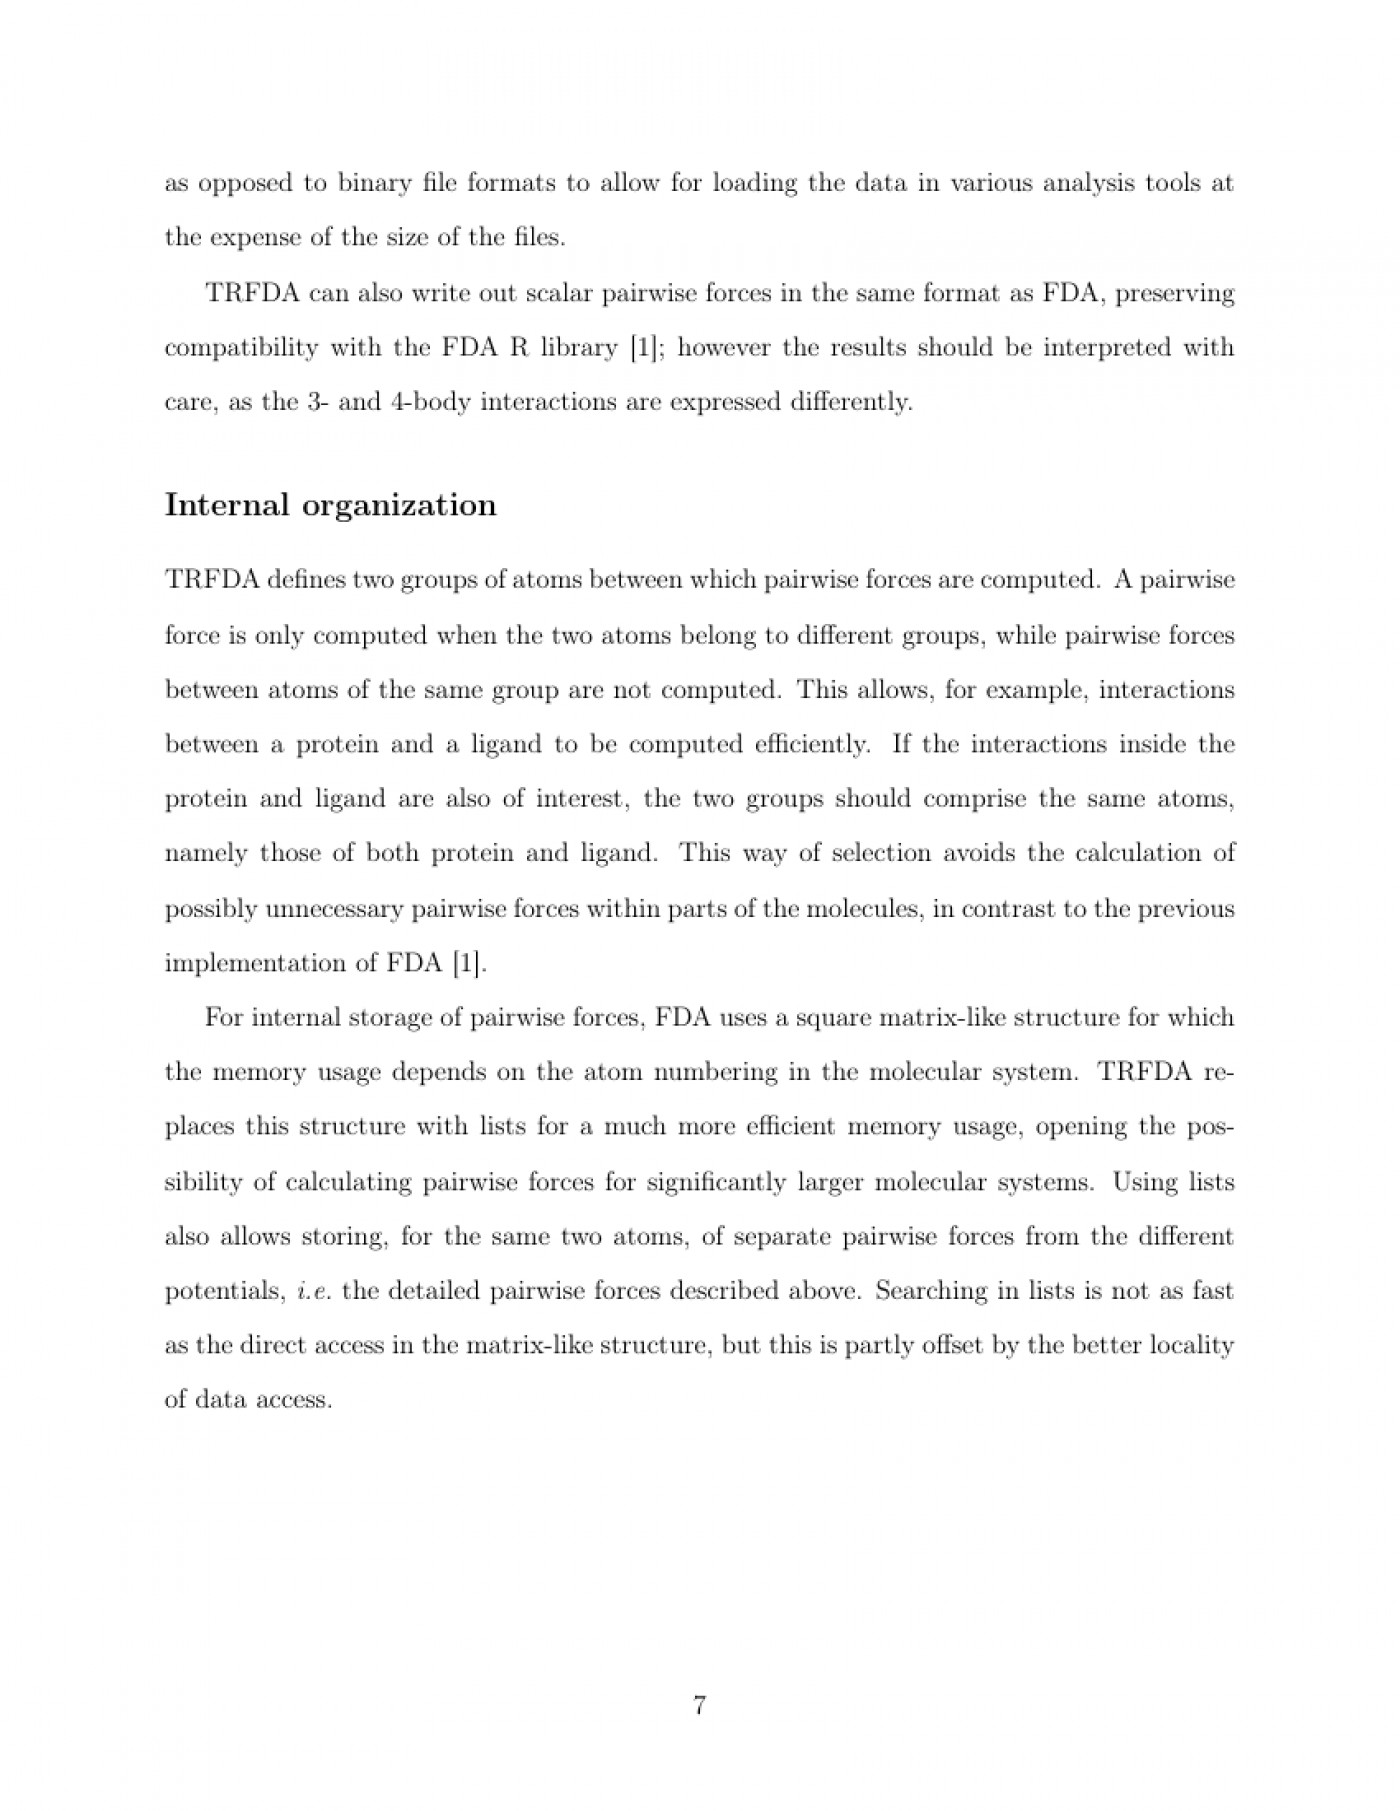 009 Output Research Paper Singular Formats Common Format Apa Template Outline 1400